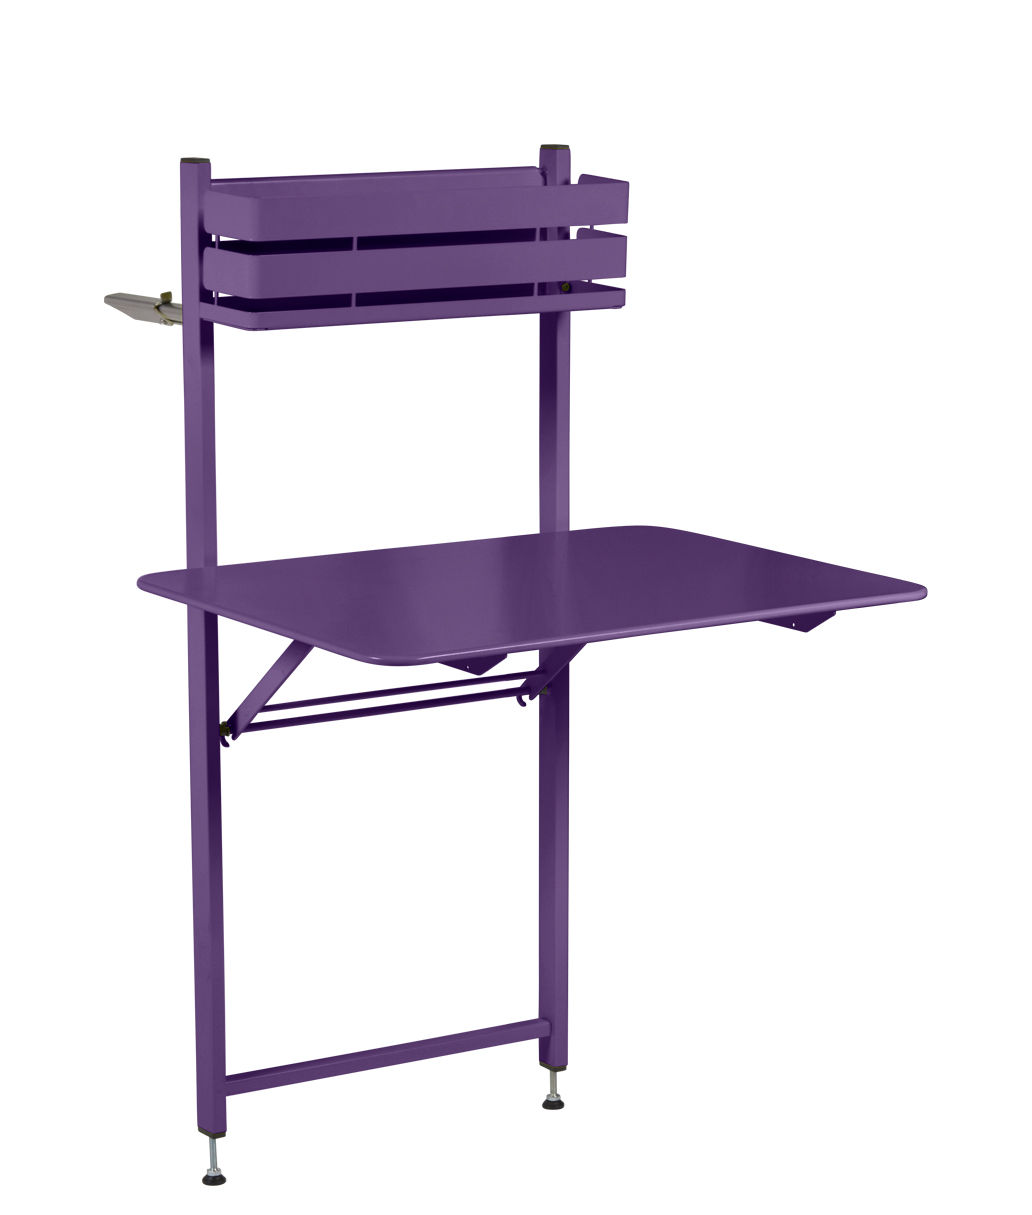 Table pliante Balcon Bistro Fermob - Aubergine - l 54 x h 74 | Made ...